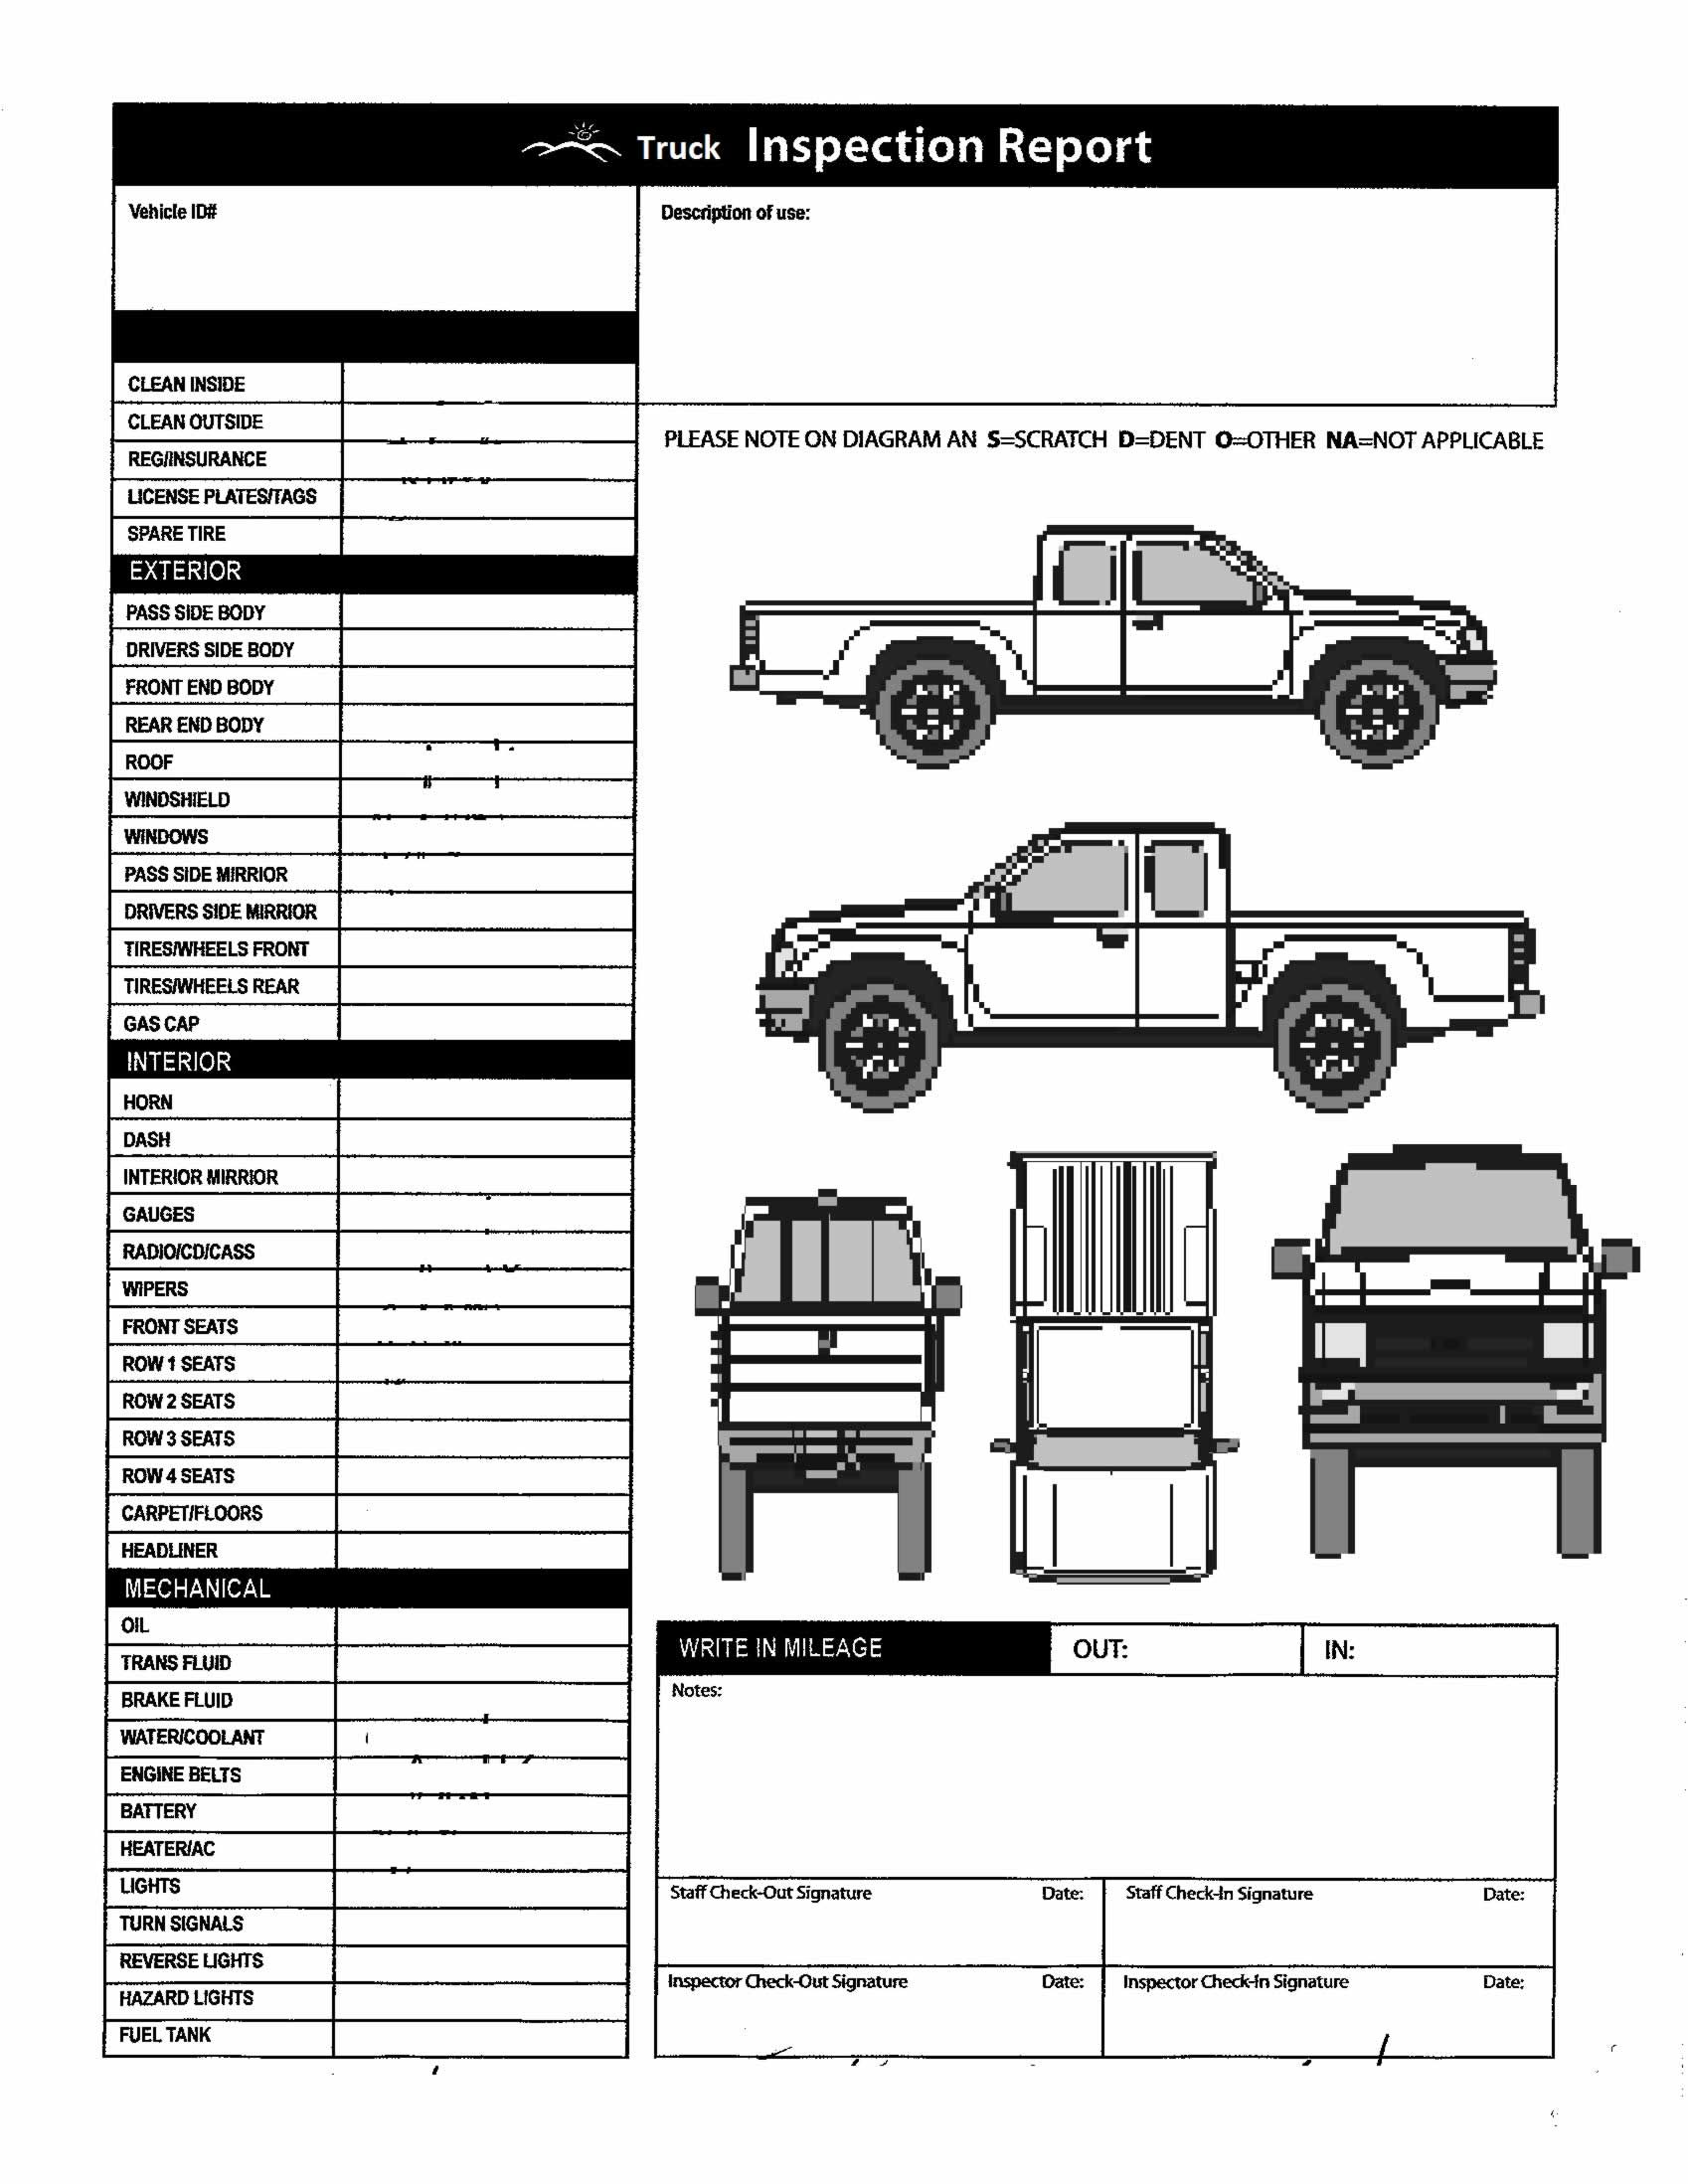 Cdl Training San Antonio Is A Truck Driving School With Experience We Are Located In San Antonio Vehicle Inspection Inspection Checklist Spreadsheet Template Vehicle check in sheet template